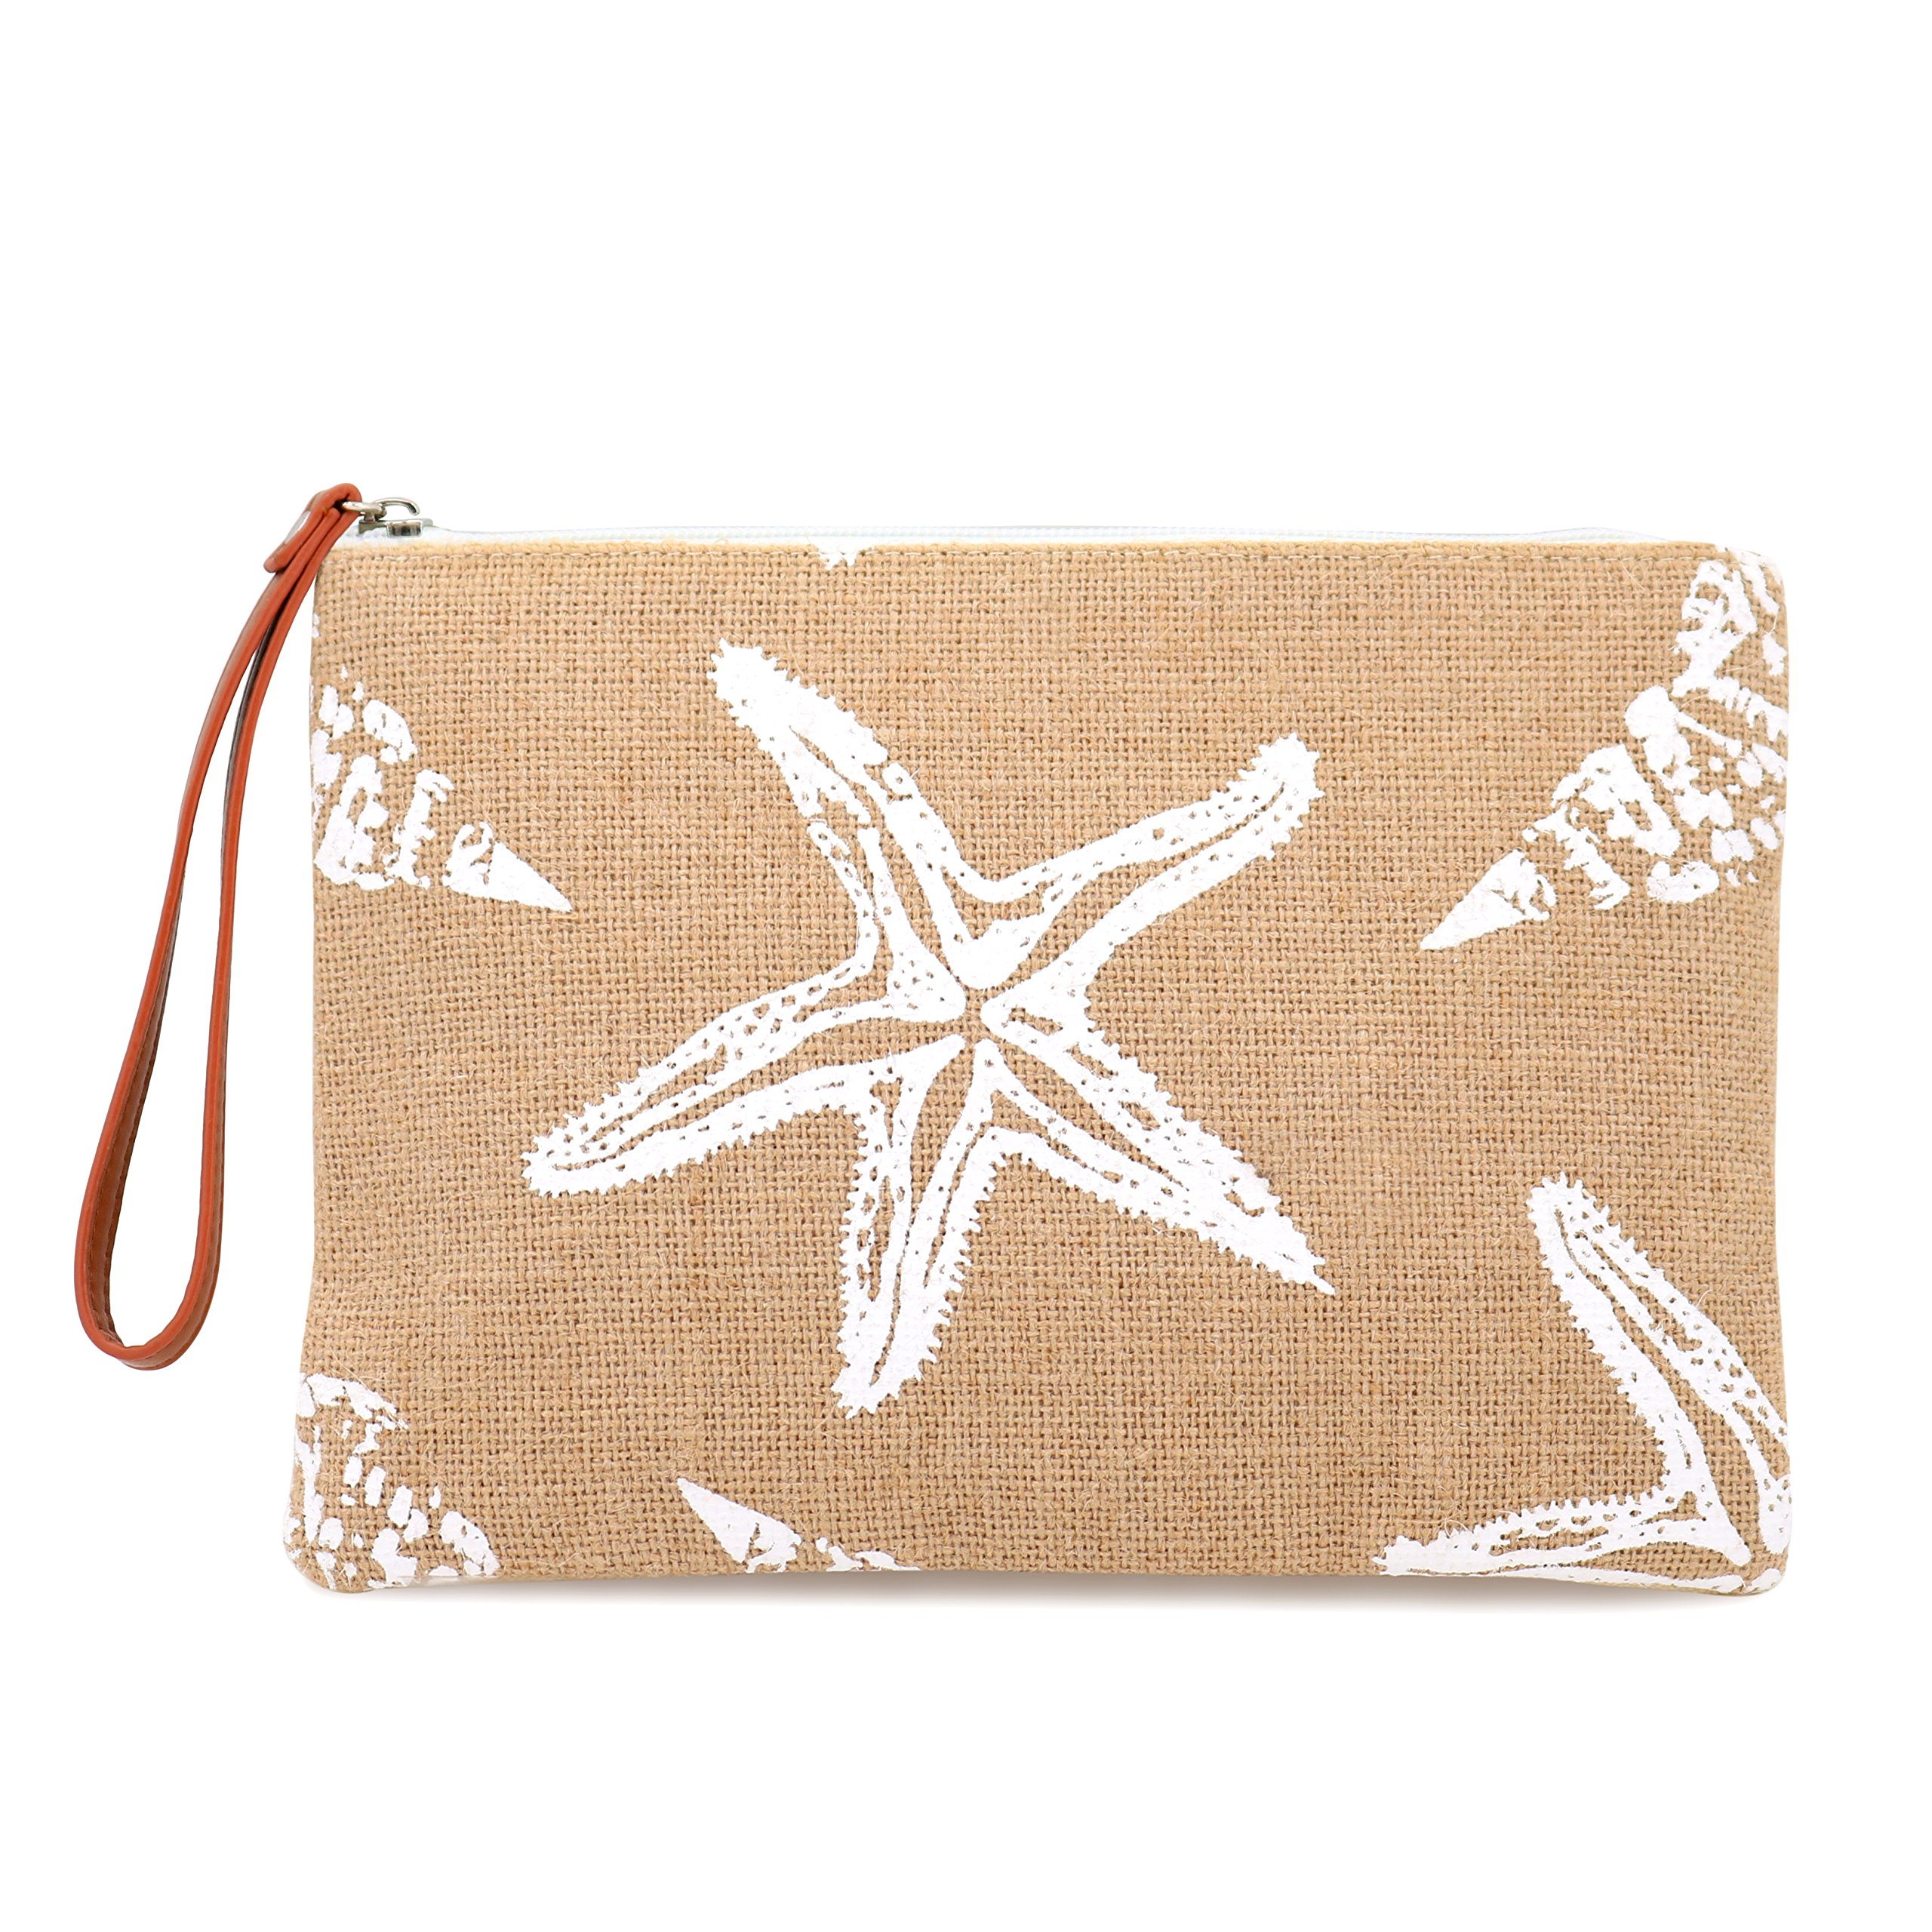 Seven Island Women Leather Canvas Cute Tropical Pineapple Print Unisex Portable Travel Evening Cosmetic Makeup Zipper Purse Wrist Pouch Clutch